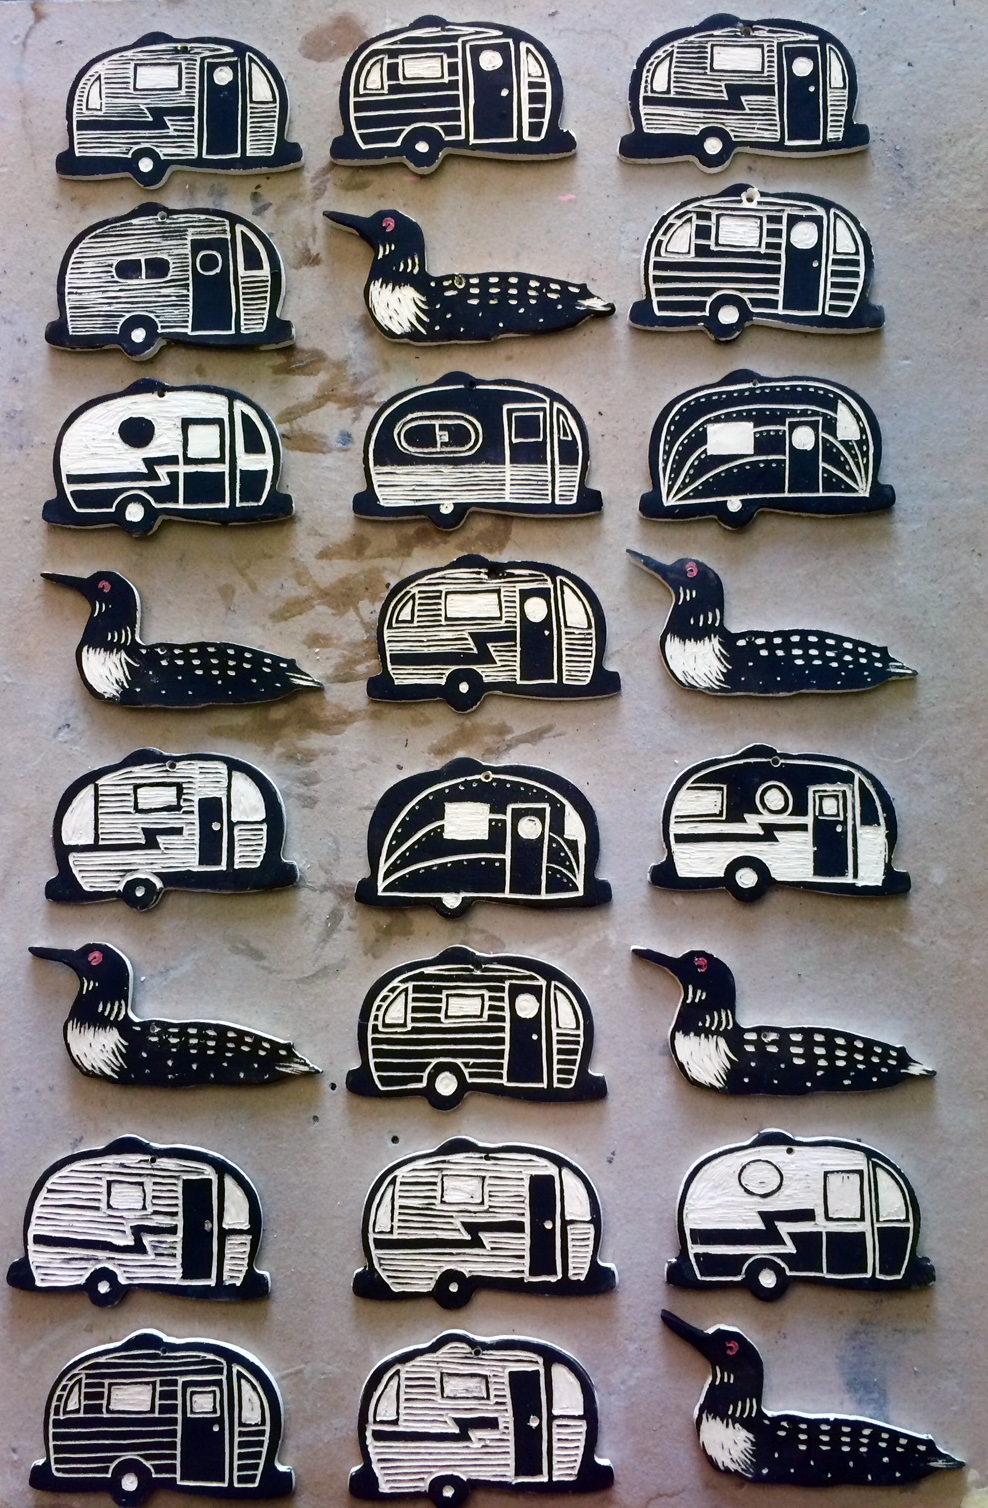 Trailer and Loon Magnets